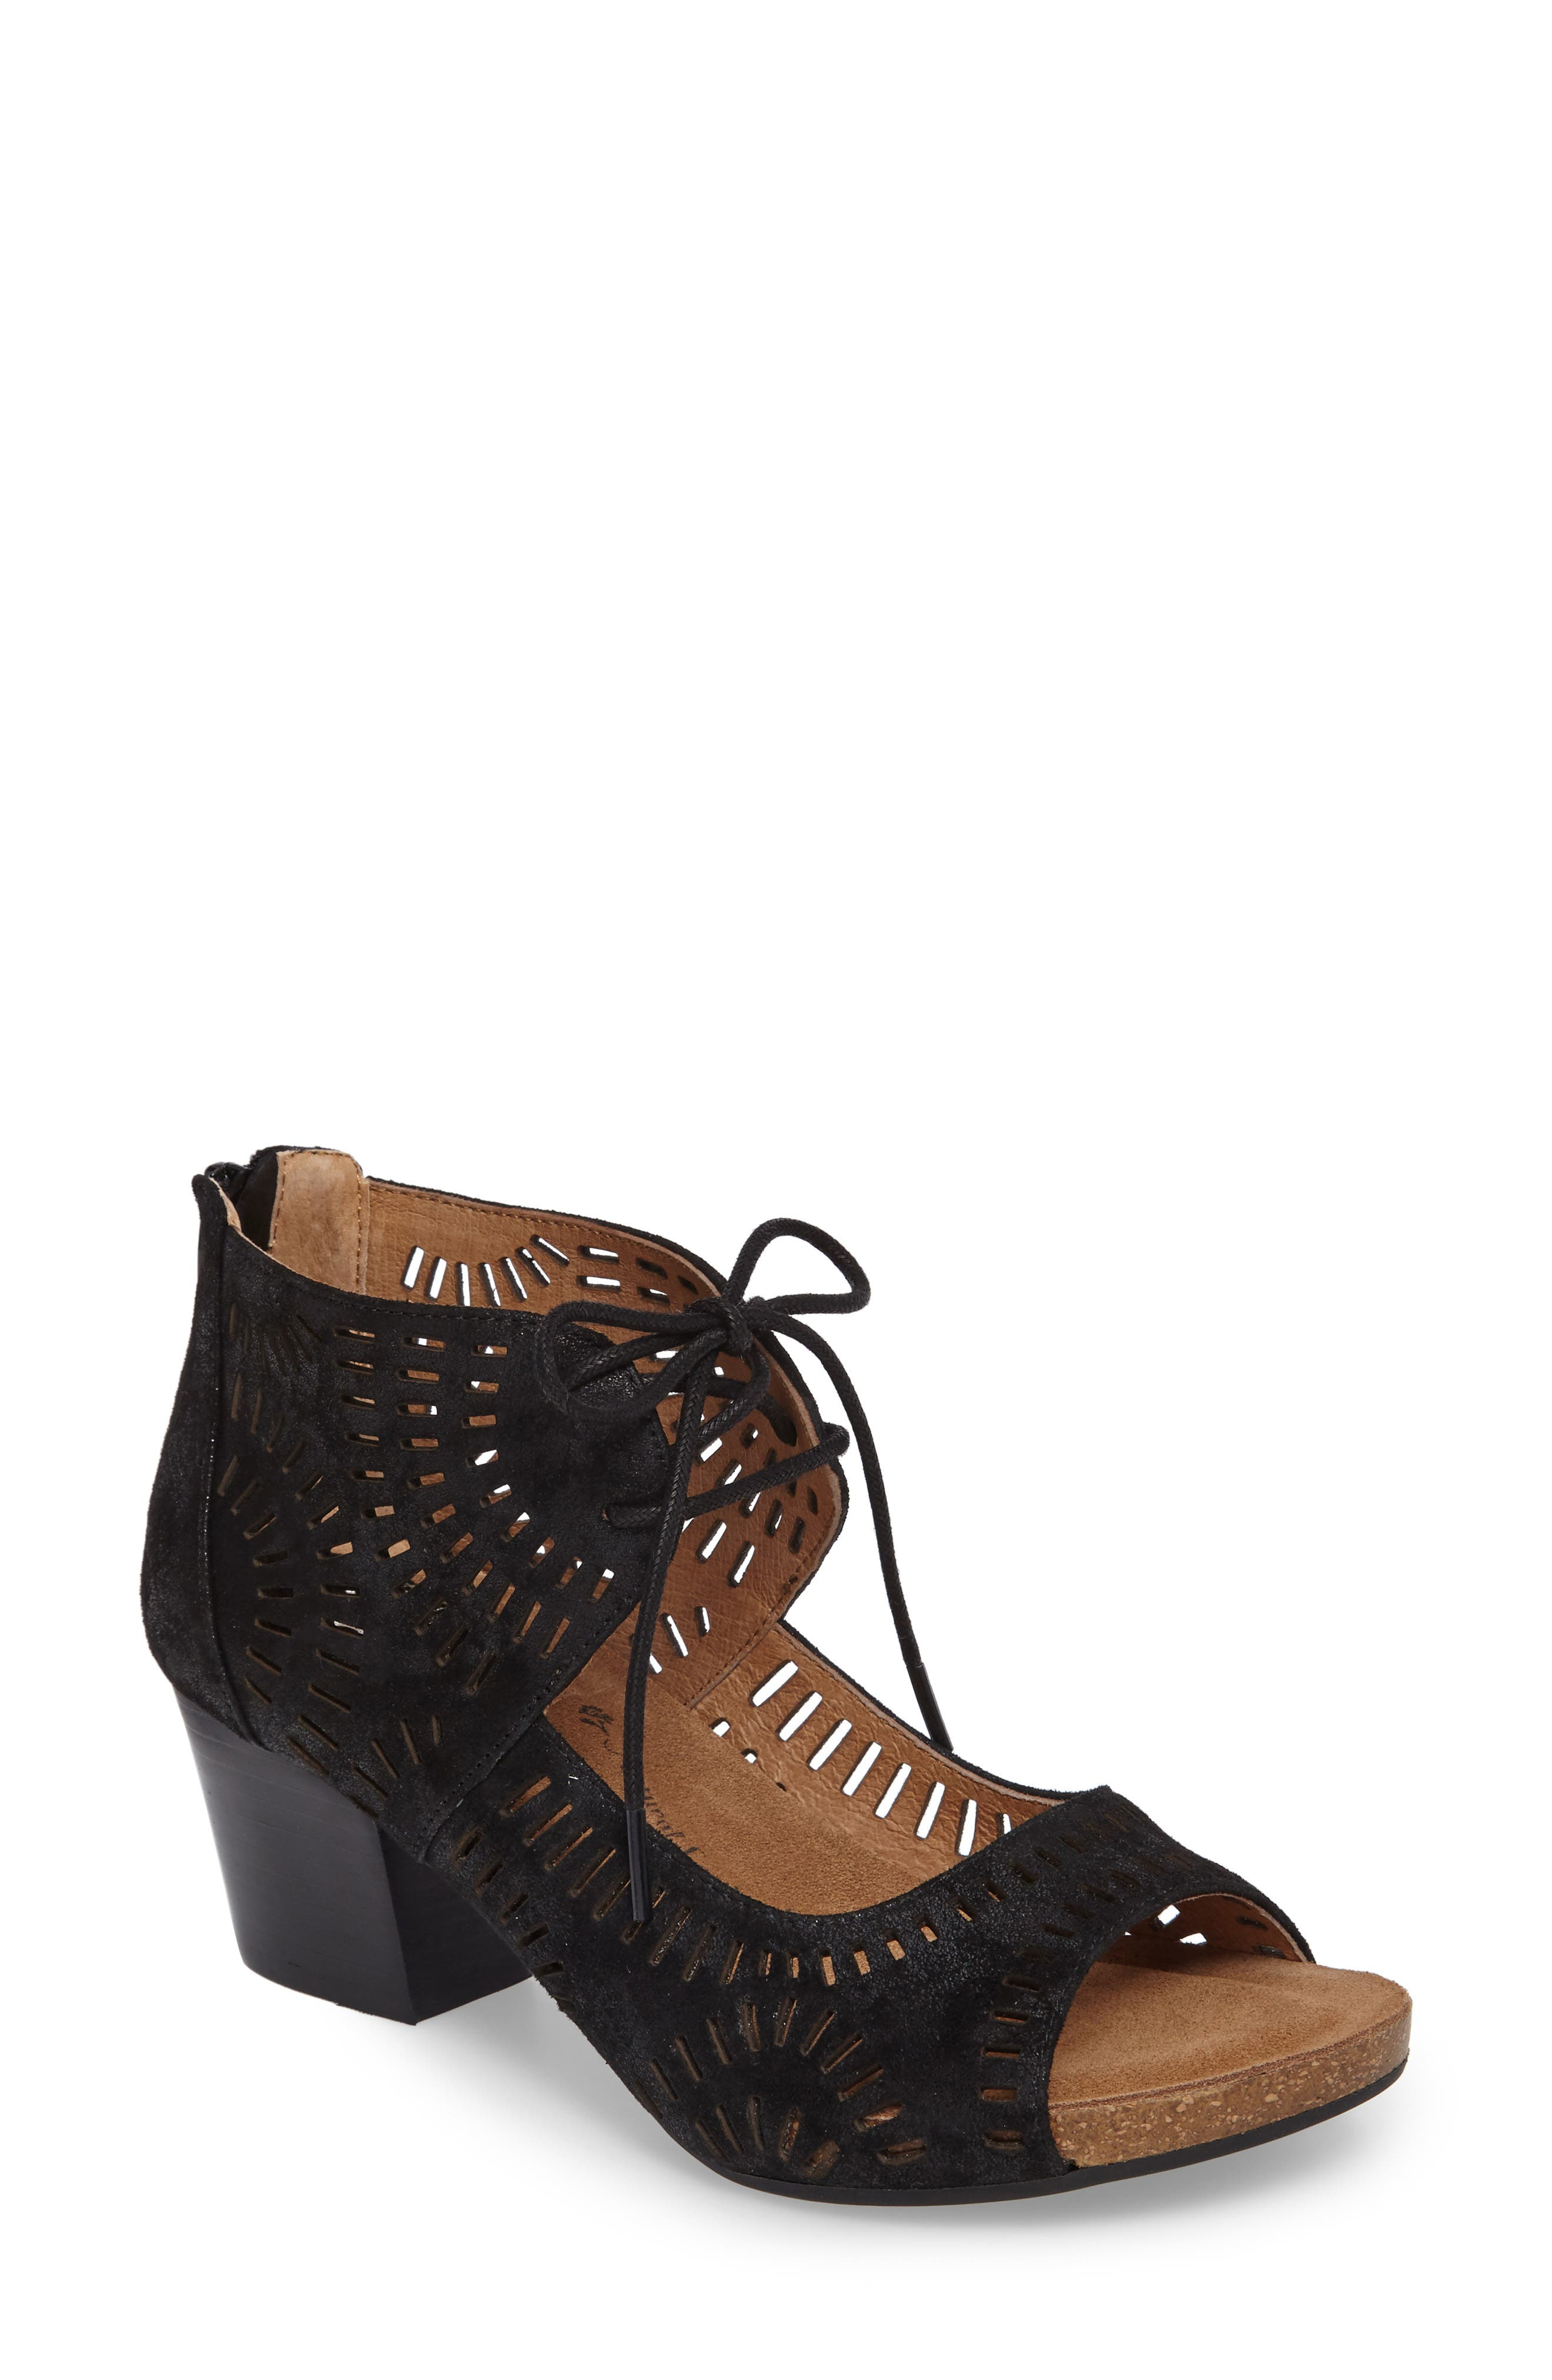 Modesto Perforated Sandal,                         Main,                         color, Black Distressed Foil Suede